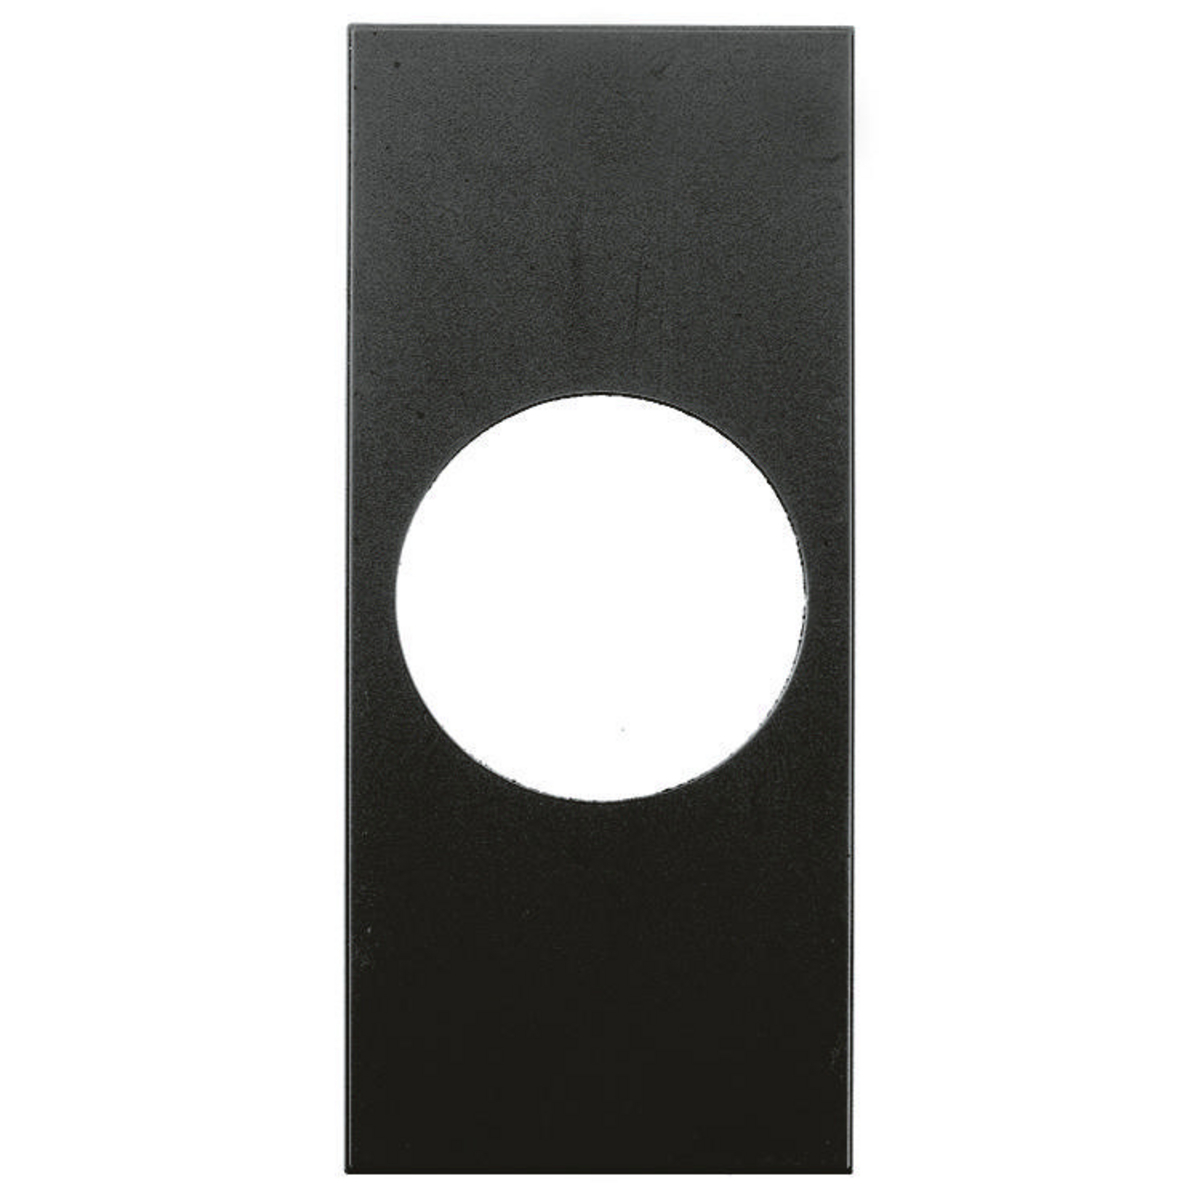 MOD FACE PLATE,T-L 20A,SNAP-IN,BK